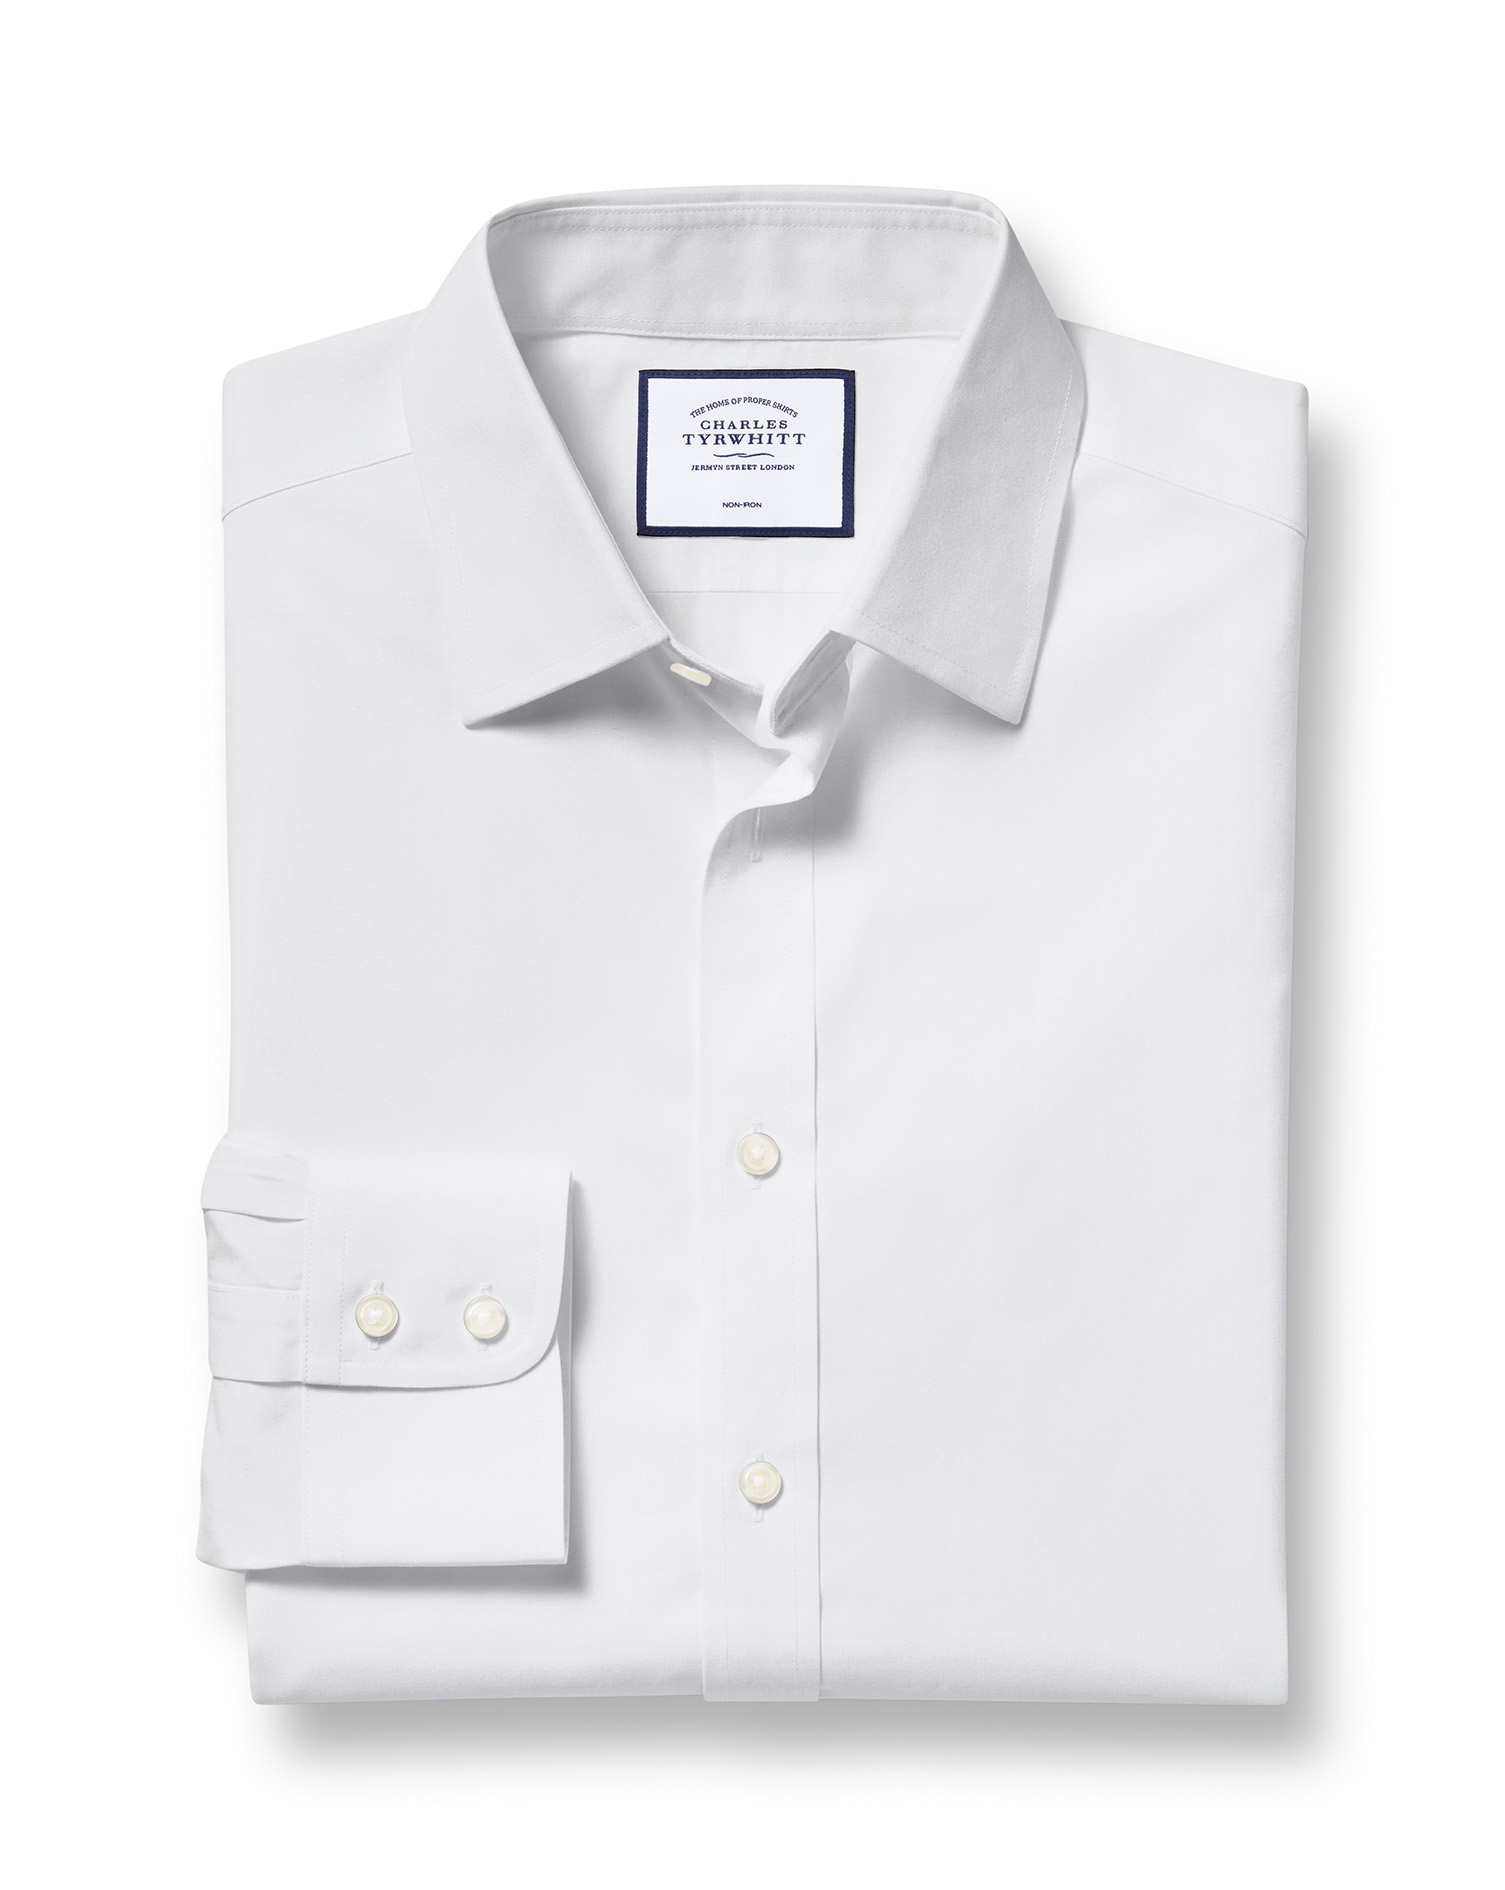 Extra Slim Fit Non-Iron Poplin White Cotton Formal Shirt Single Cuff Size 16/32 by Charles Tyrwhitt